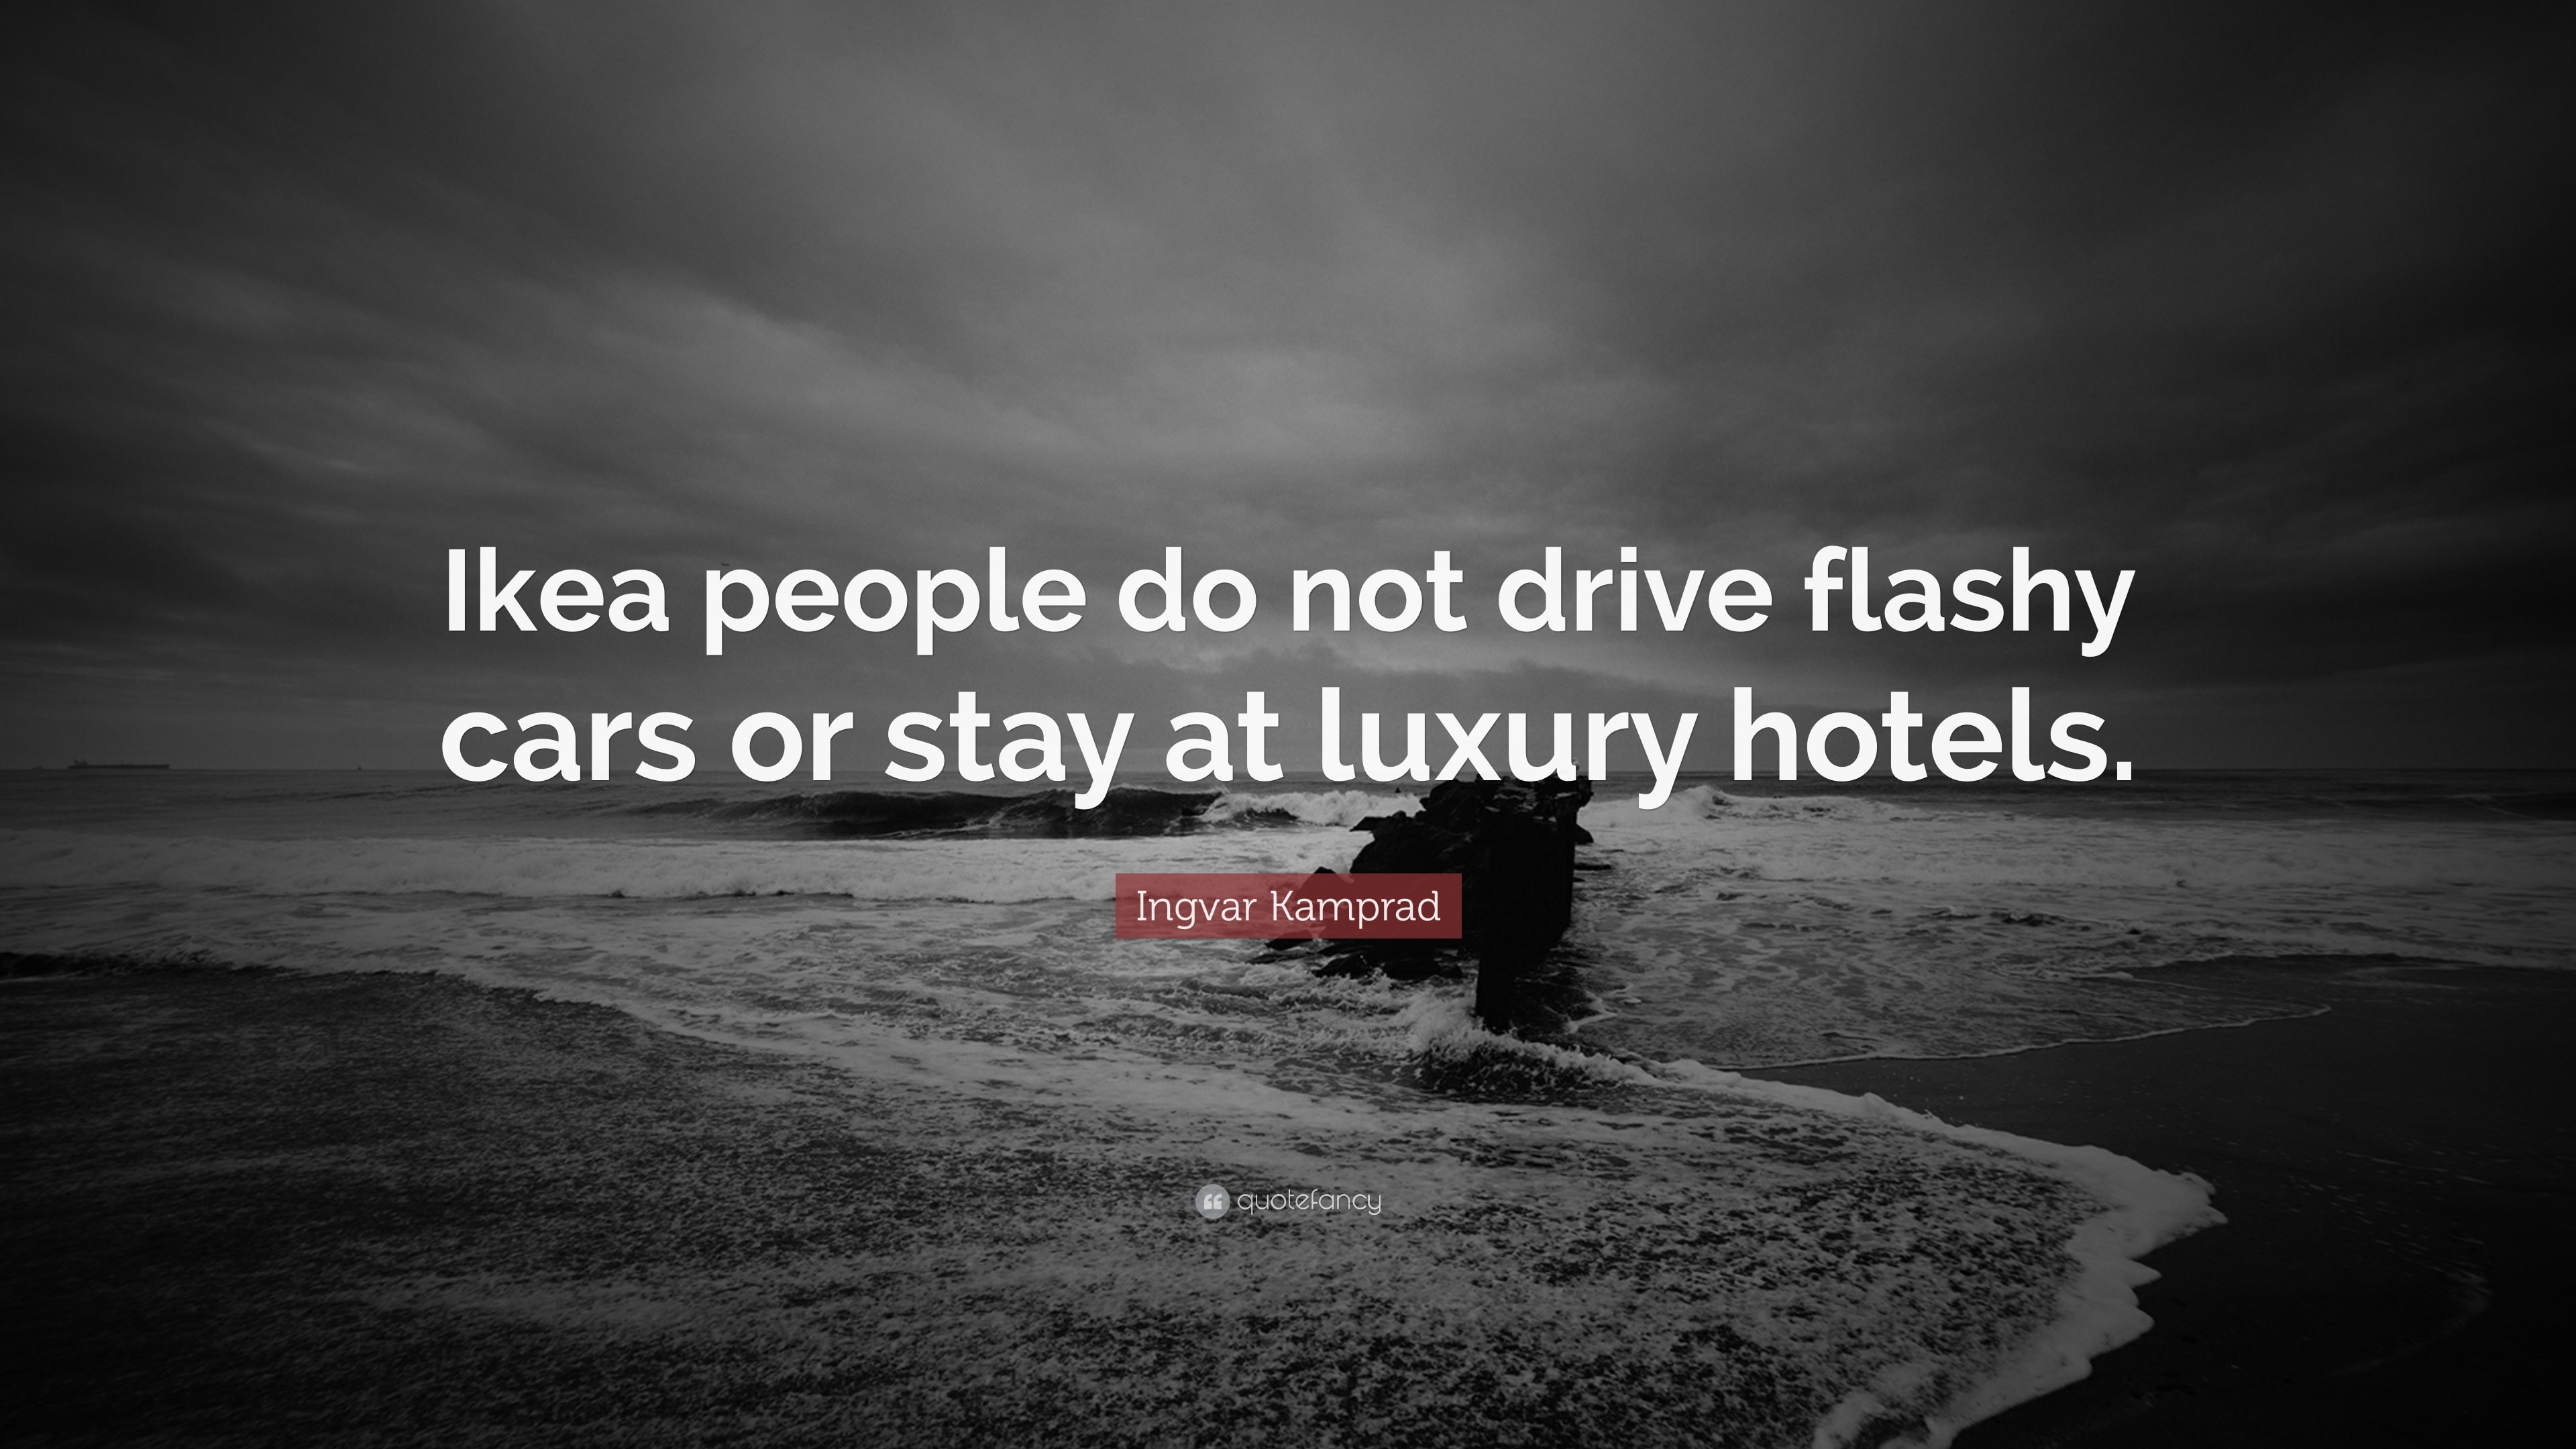 Ingvar kamprad quotes 27 wallpapers quotefancy for Hotel luxury quotes